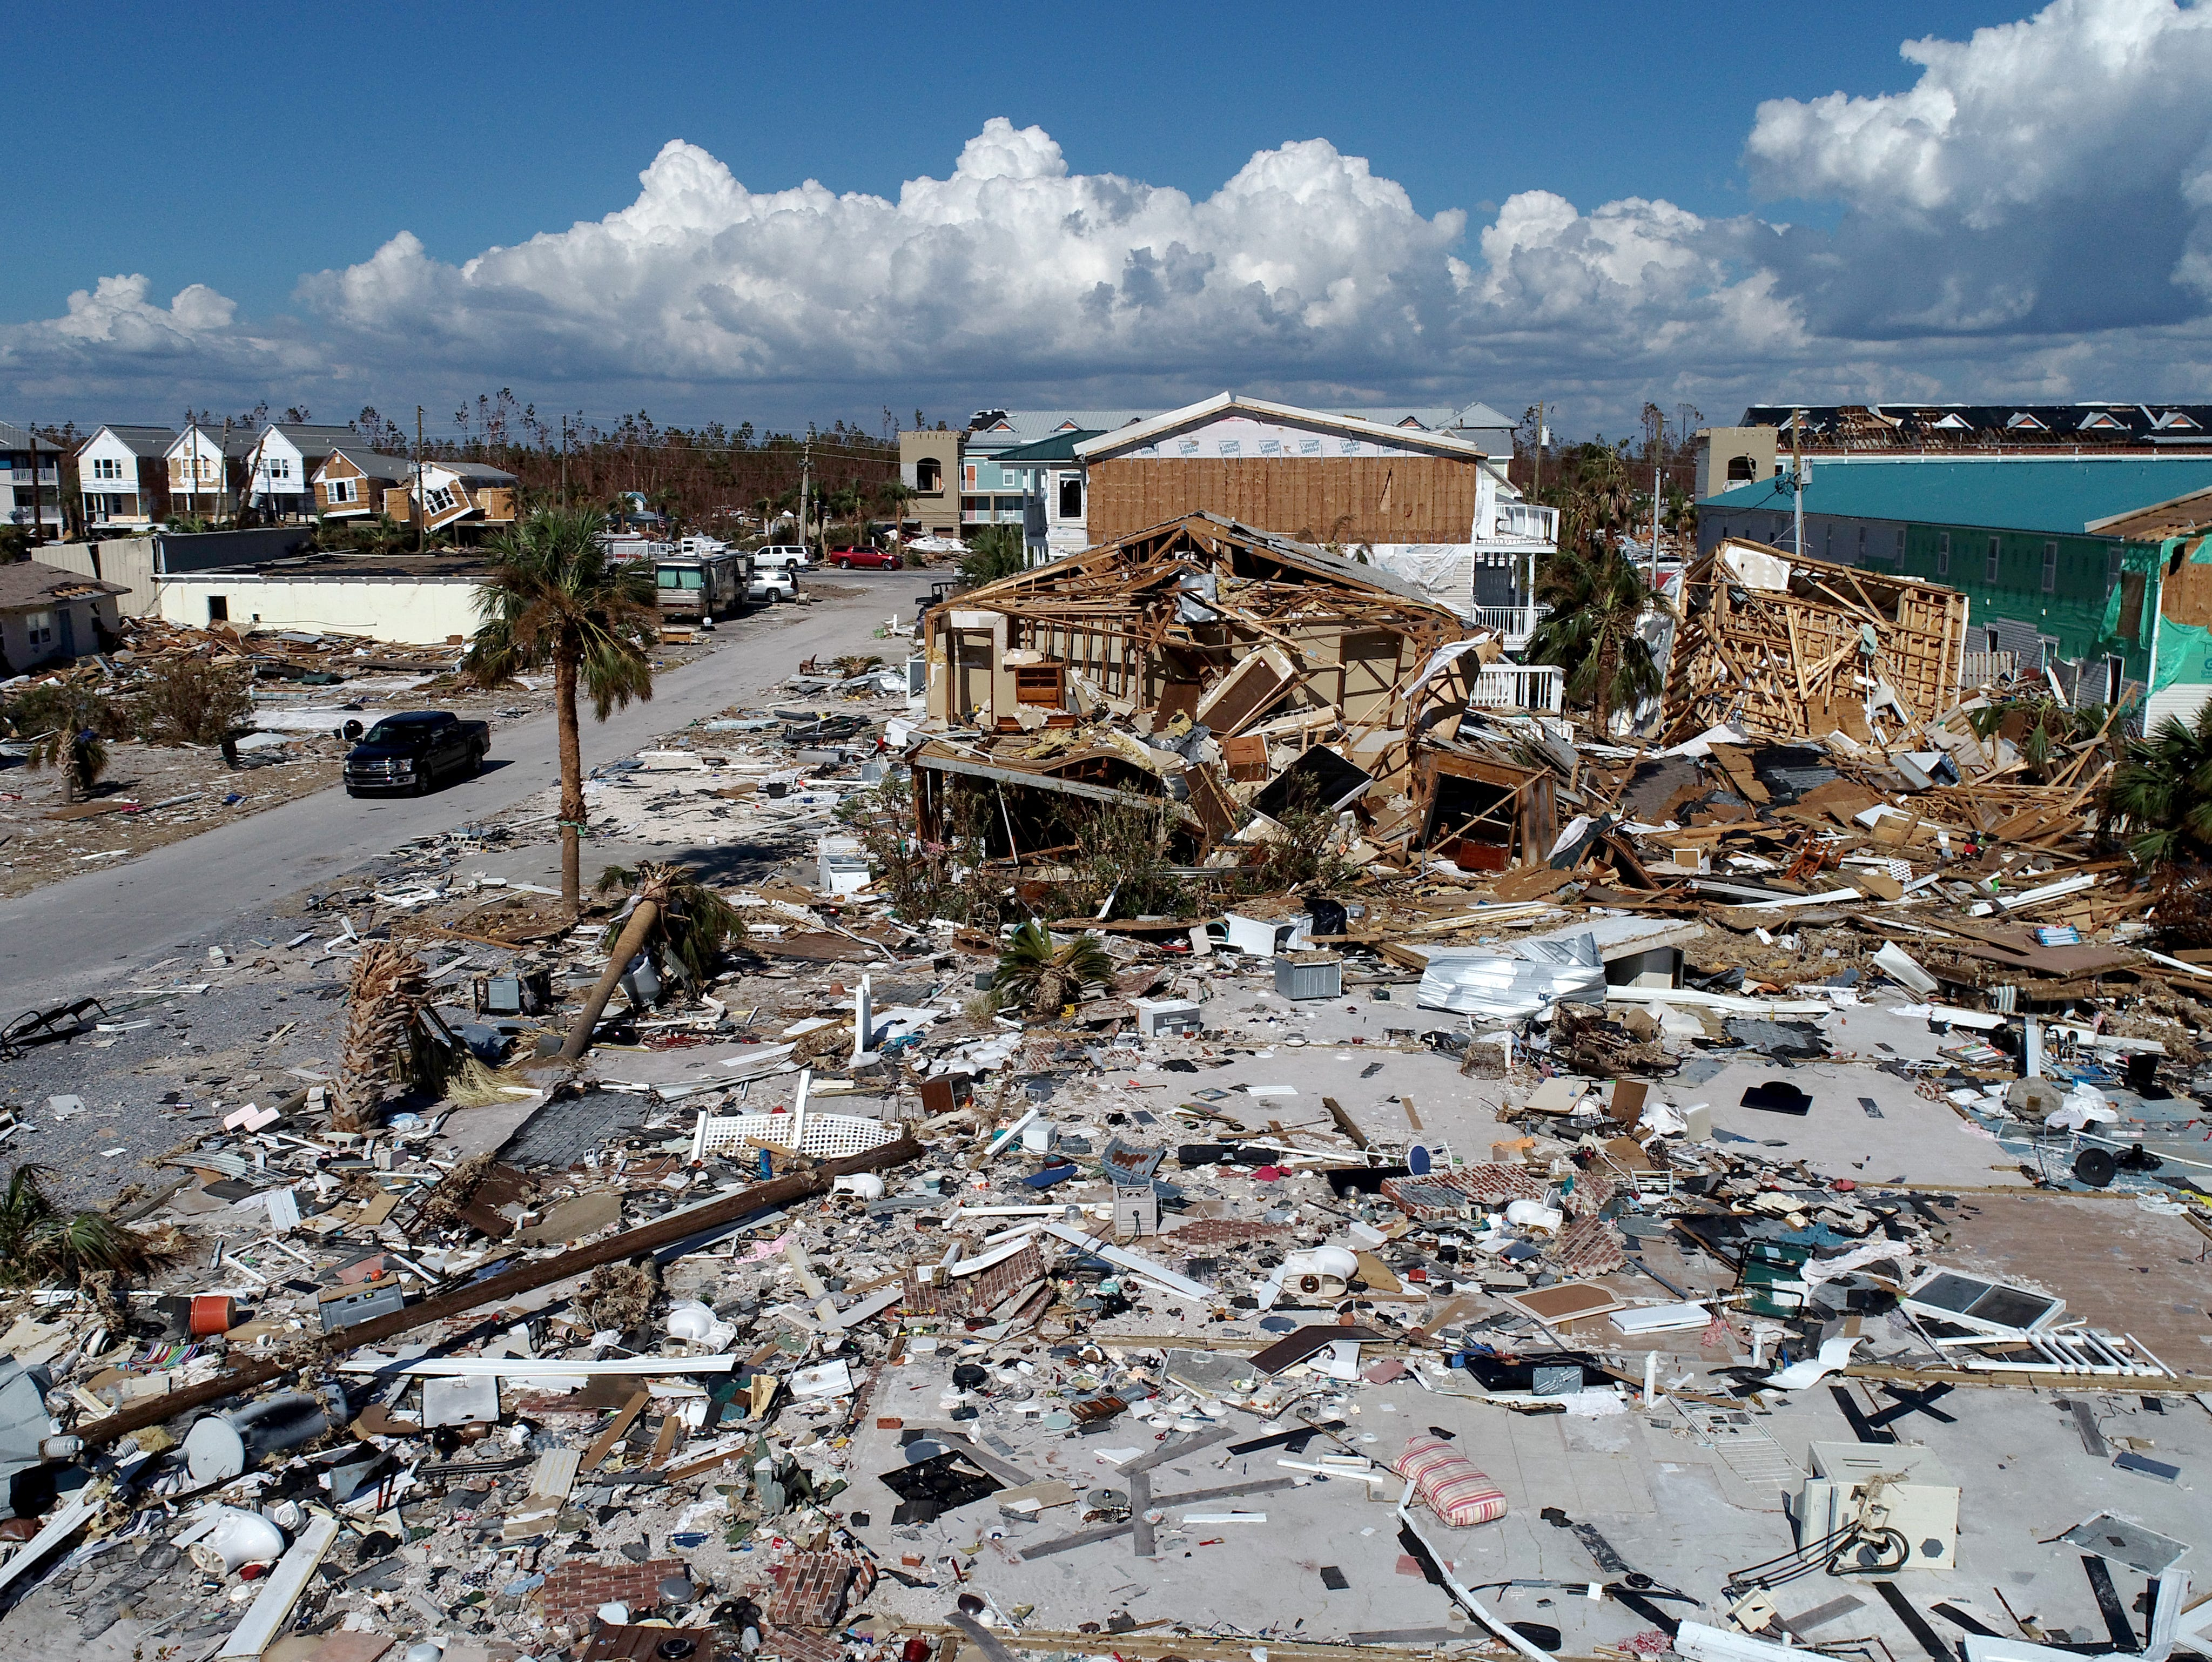 A home in Mexico Beach, Florida, shown Tuesday, Oct. 16, 2018, sustained catastrophic damage after Hurricane Michael made landfall there one week earlier.